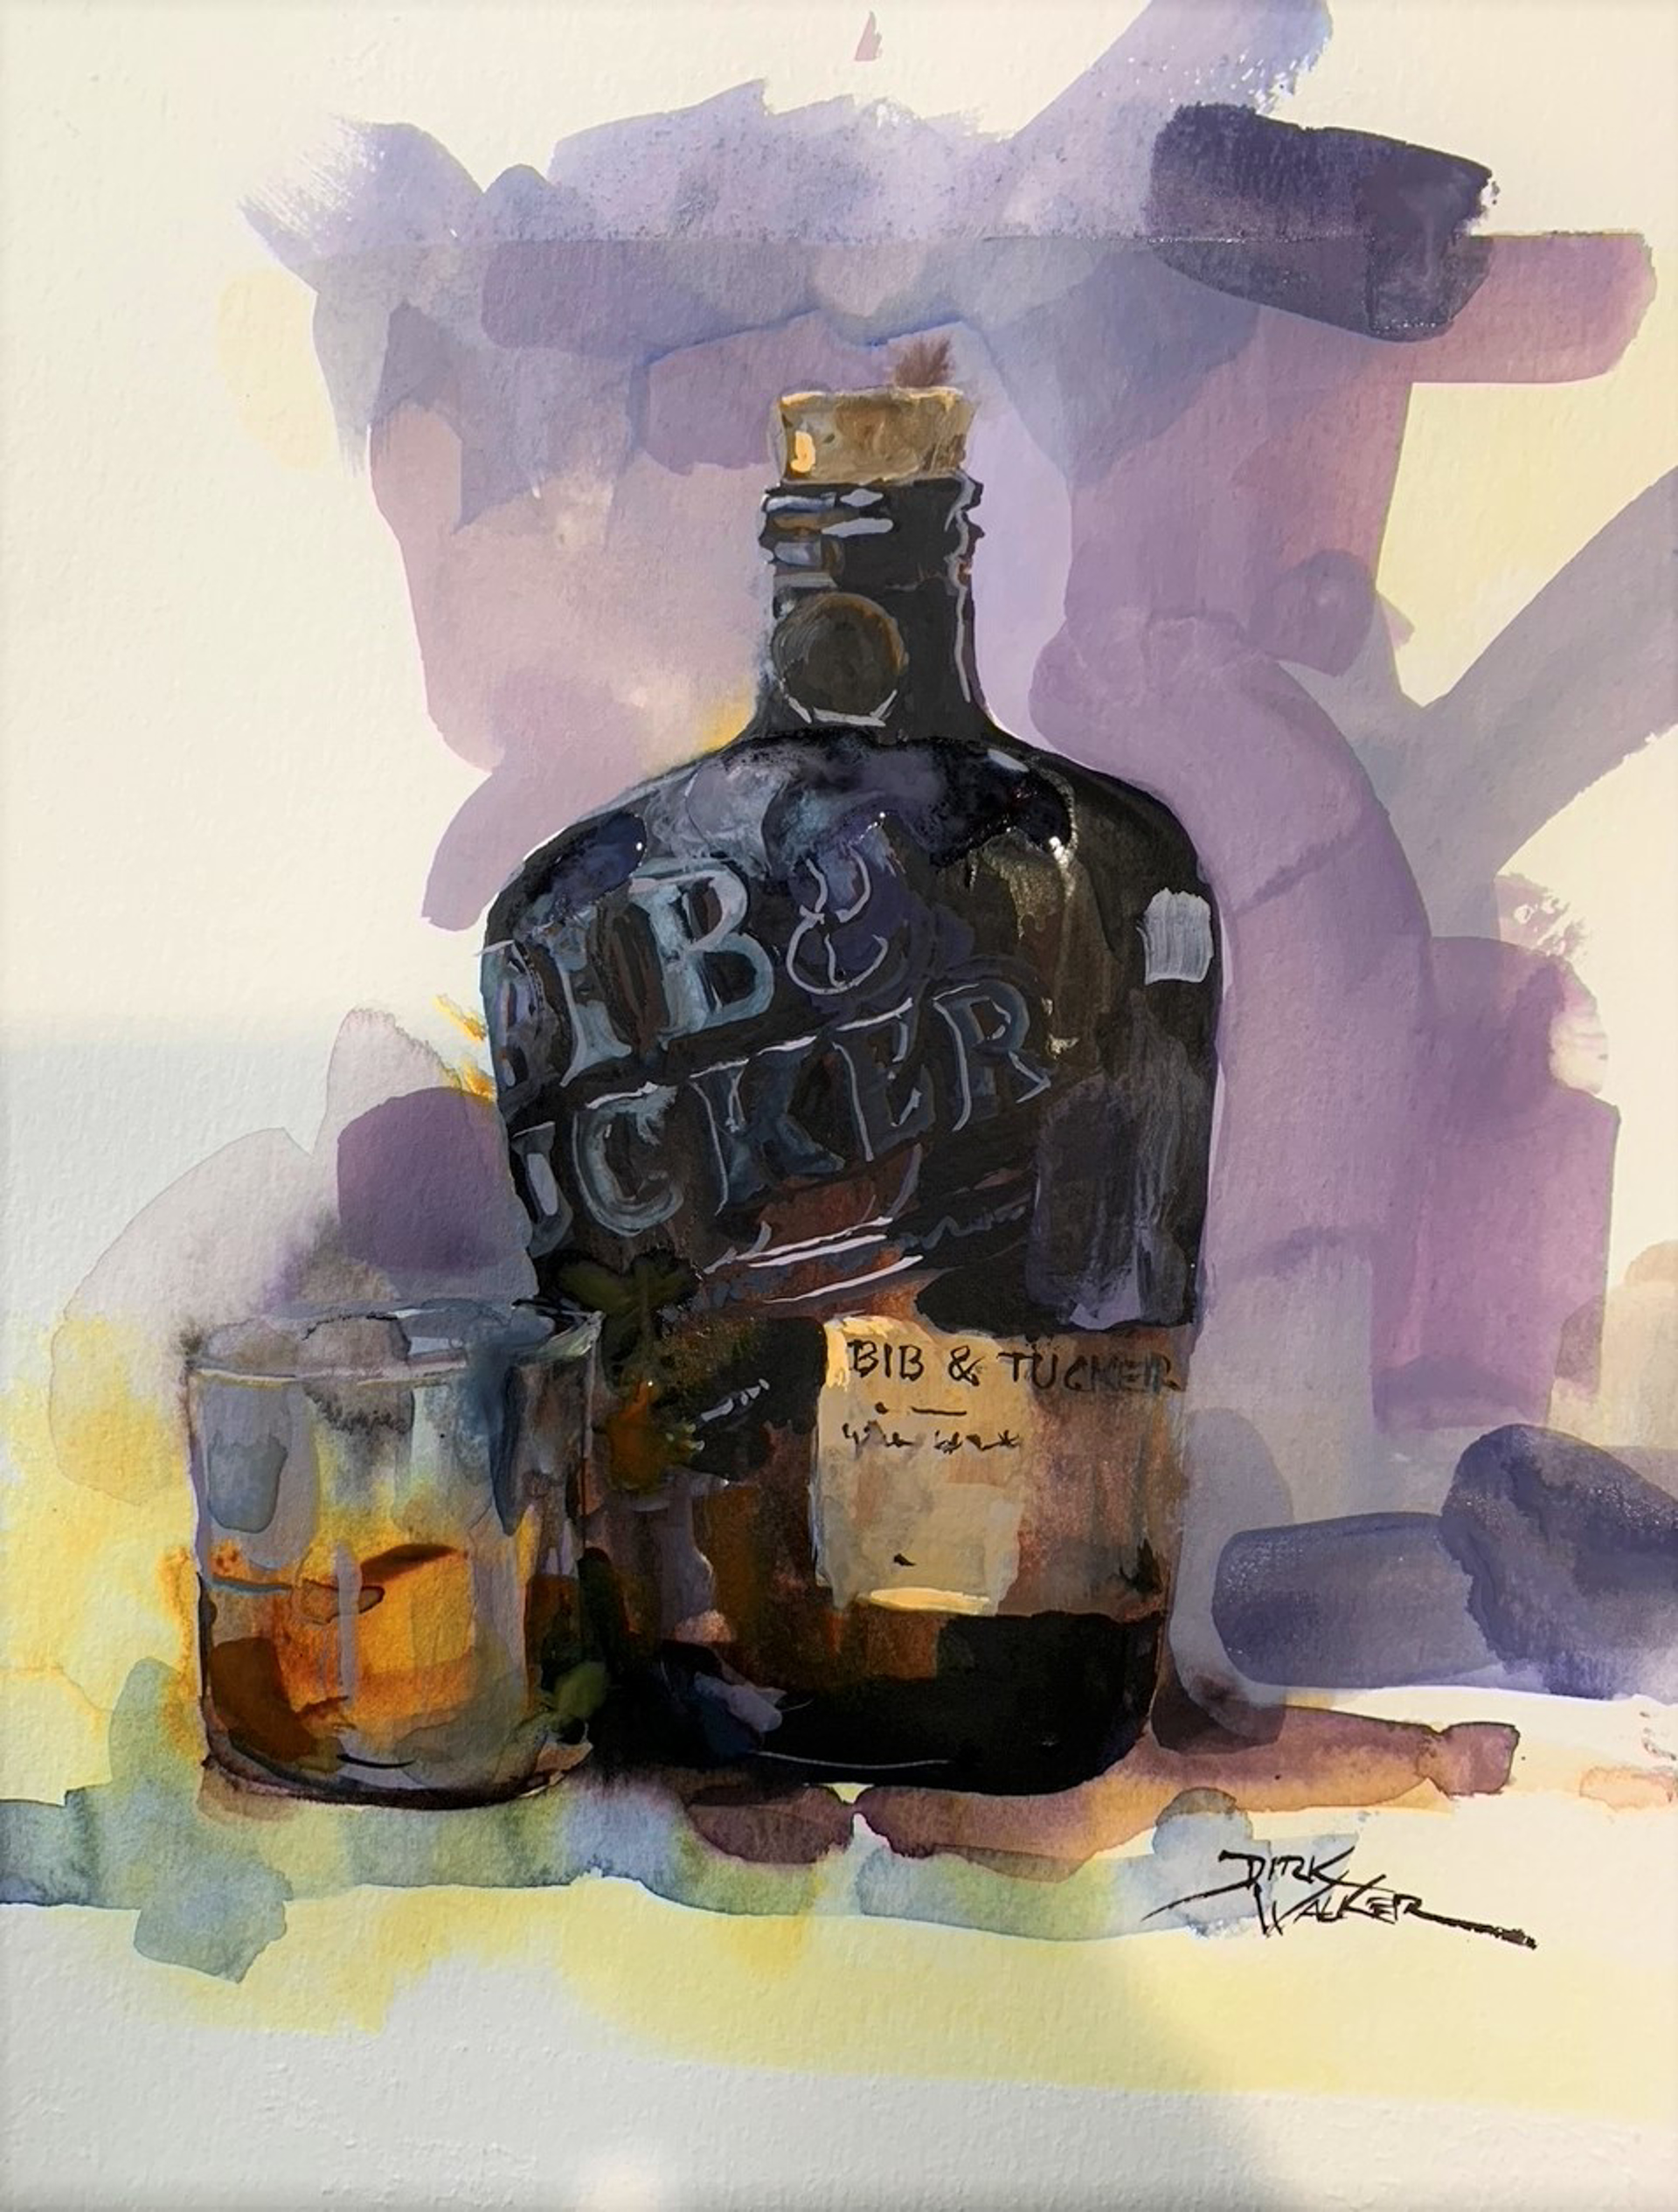 Bib & Tucker Bourbon II by Dirk Walker